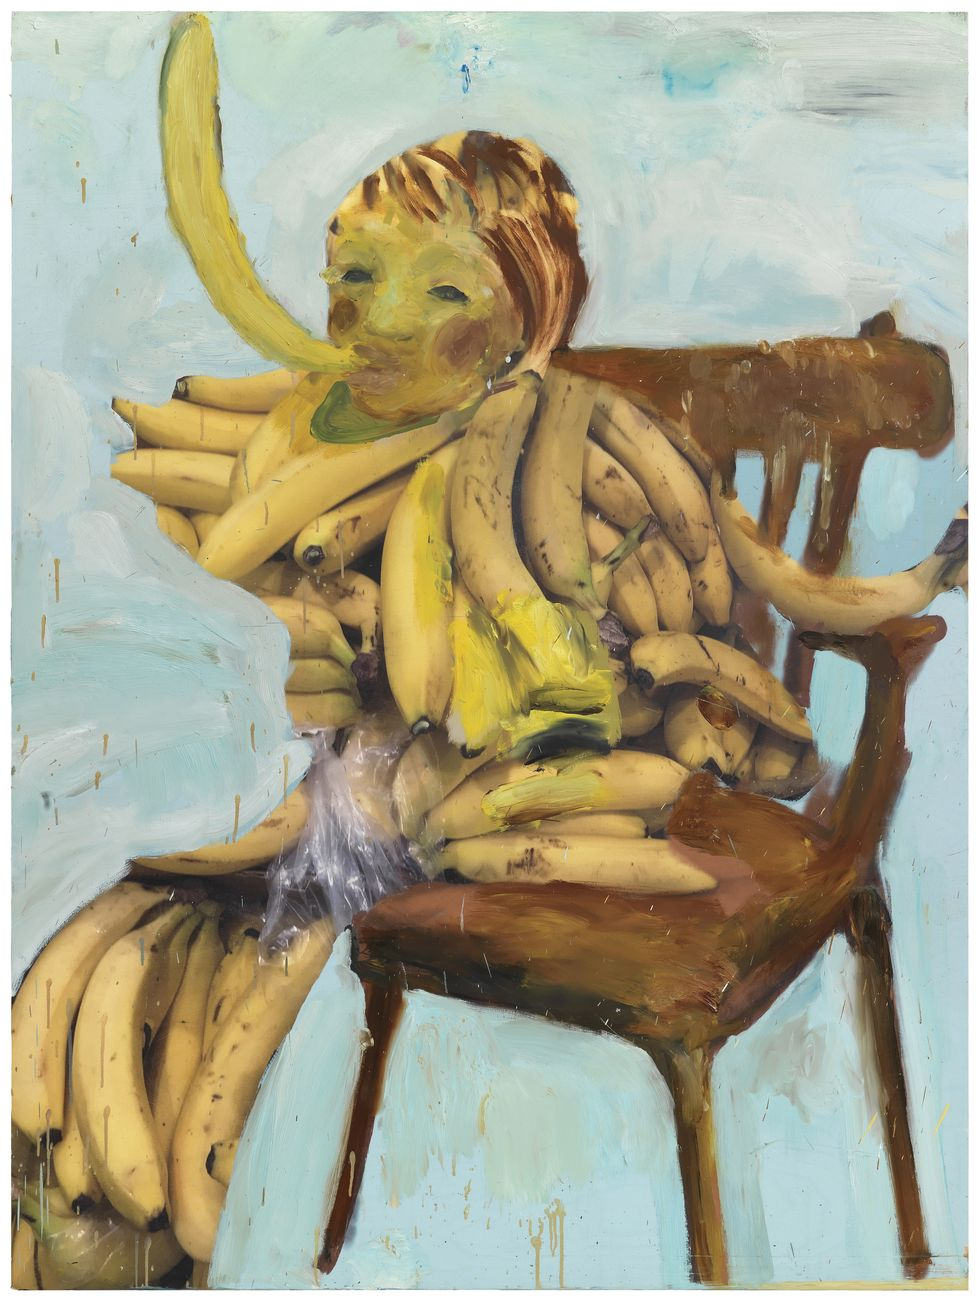 Michele Bubacco, Young musician plays his trumpet sitting on a chair, 2018, oil and print on wood, 173,5x130 cm. Photo Anna Lott Donadel